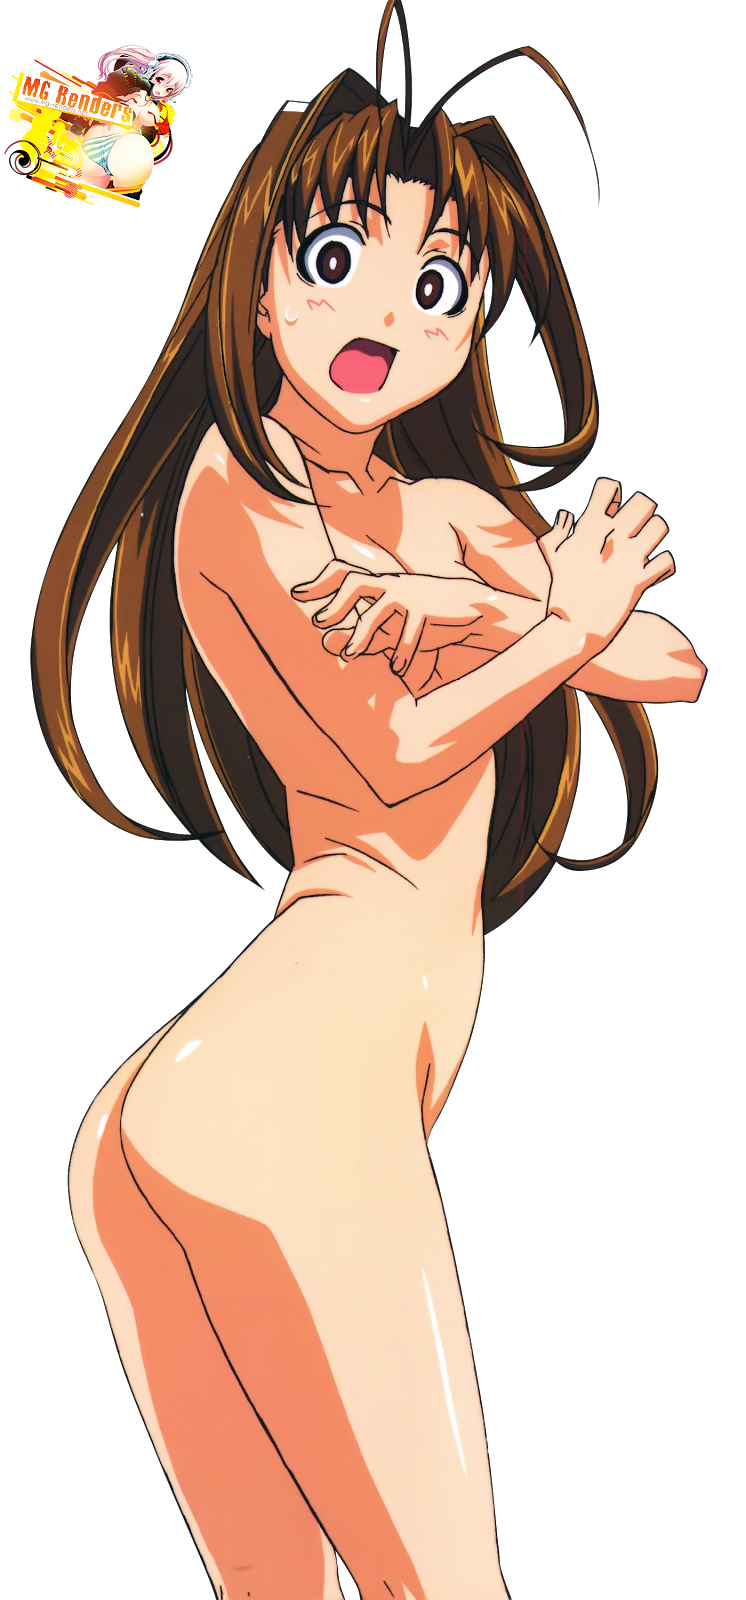 Tags: Anime, Render,  Love Hina,  Narusegawa Naru,  Topless, PNG, Image, Picture